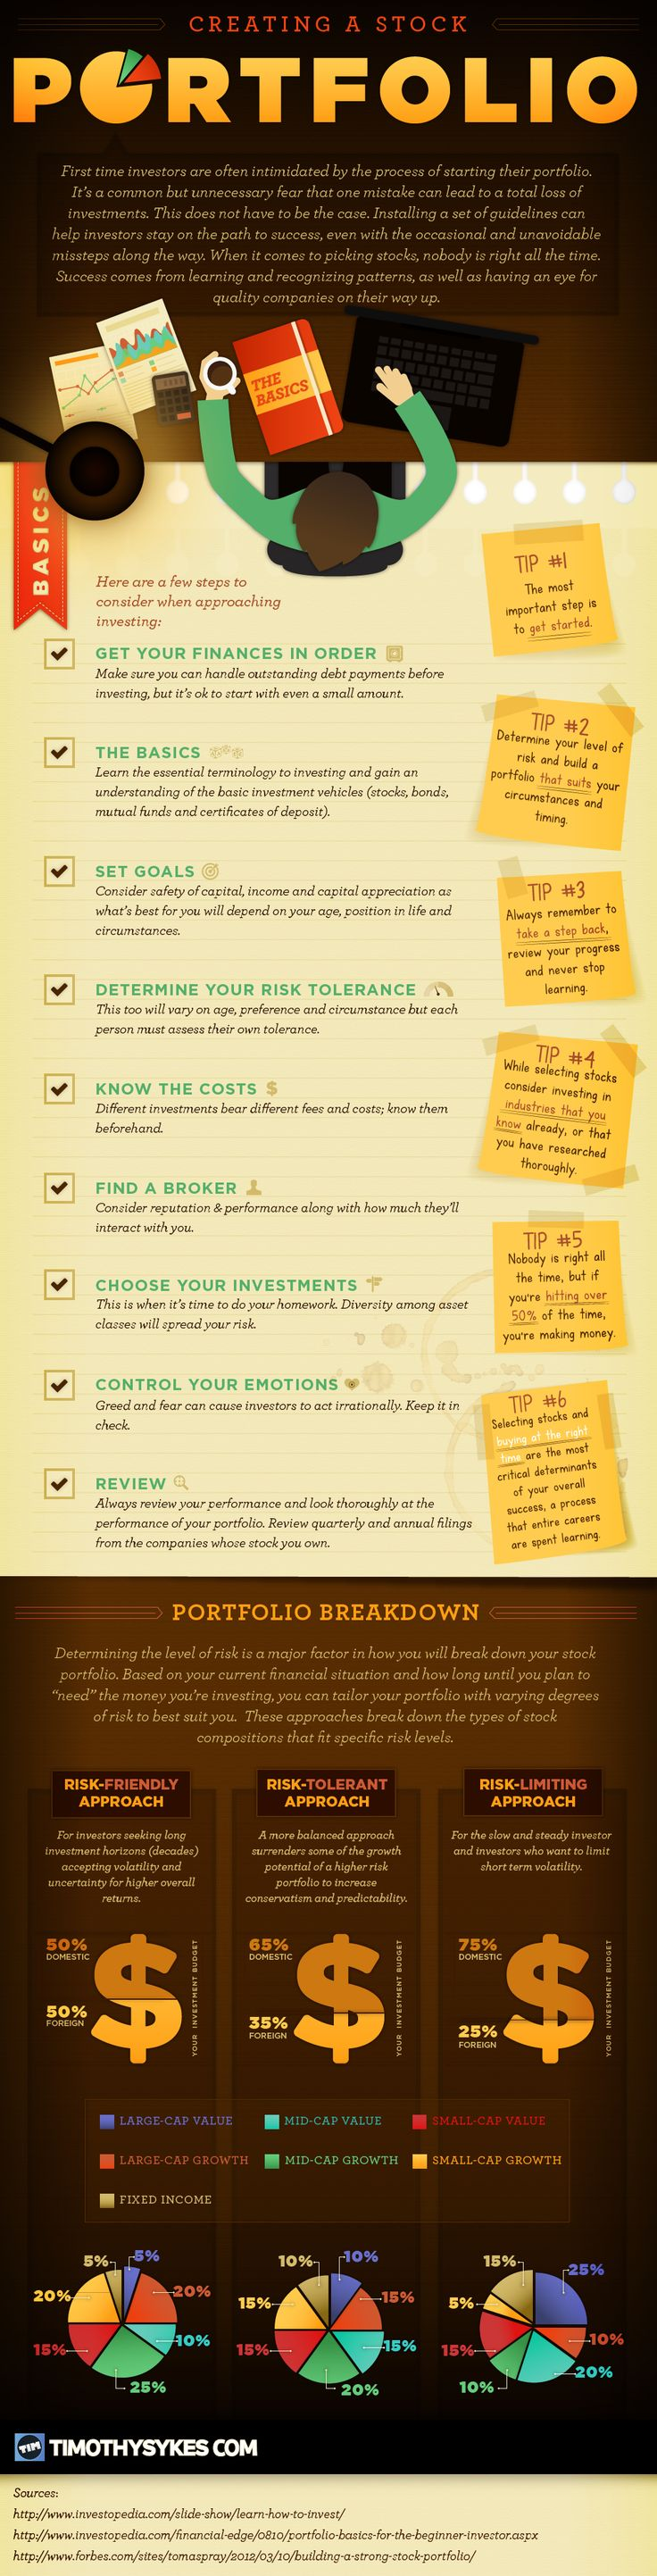 This infographic demonstrates some of the basic principles to consider when building a portfolio.